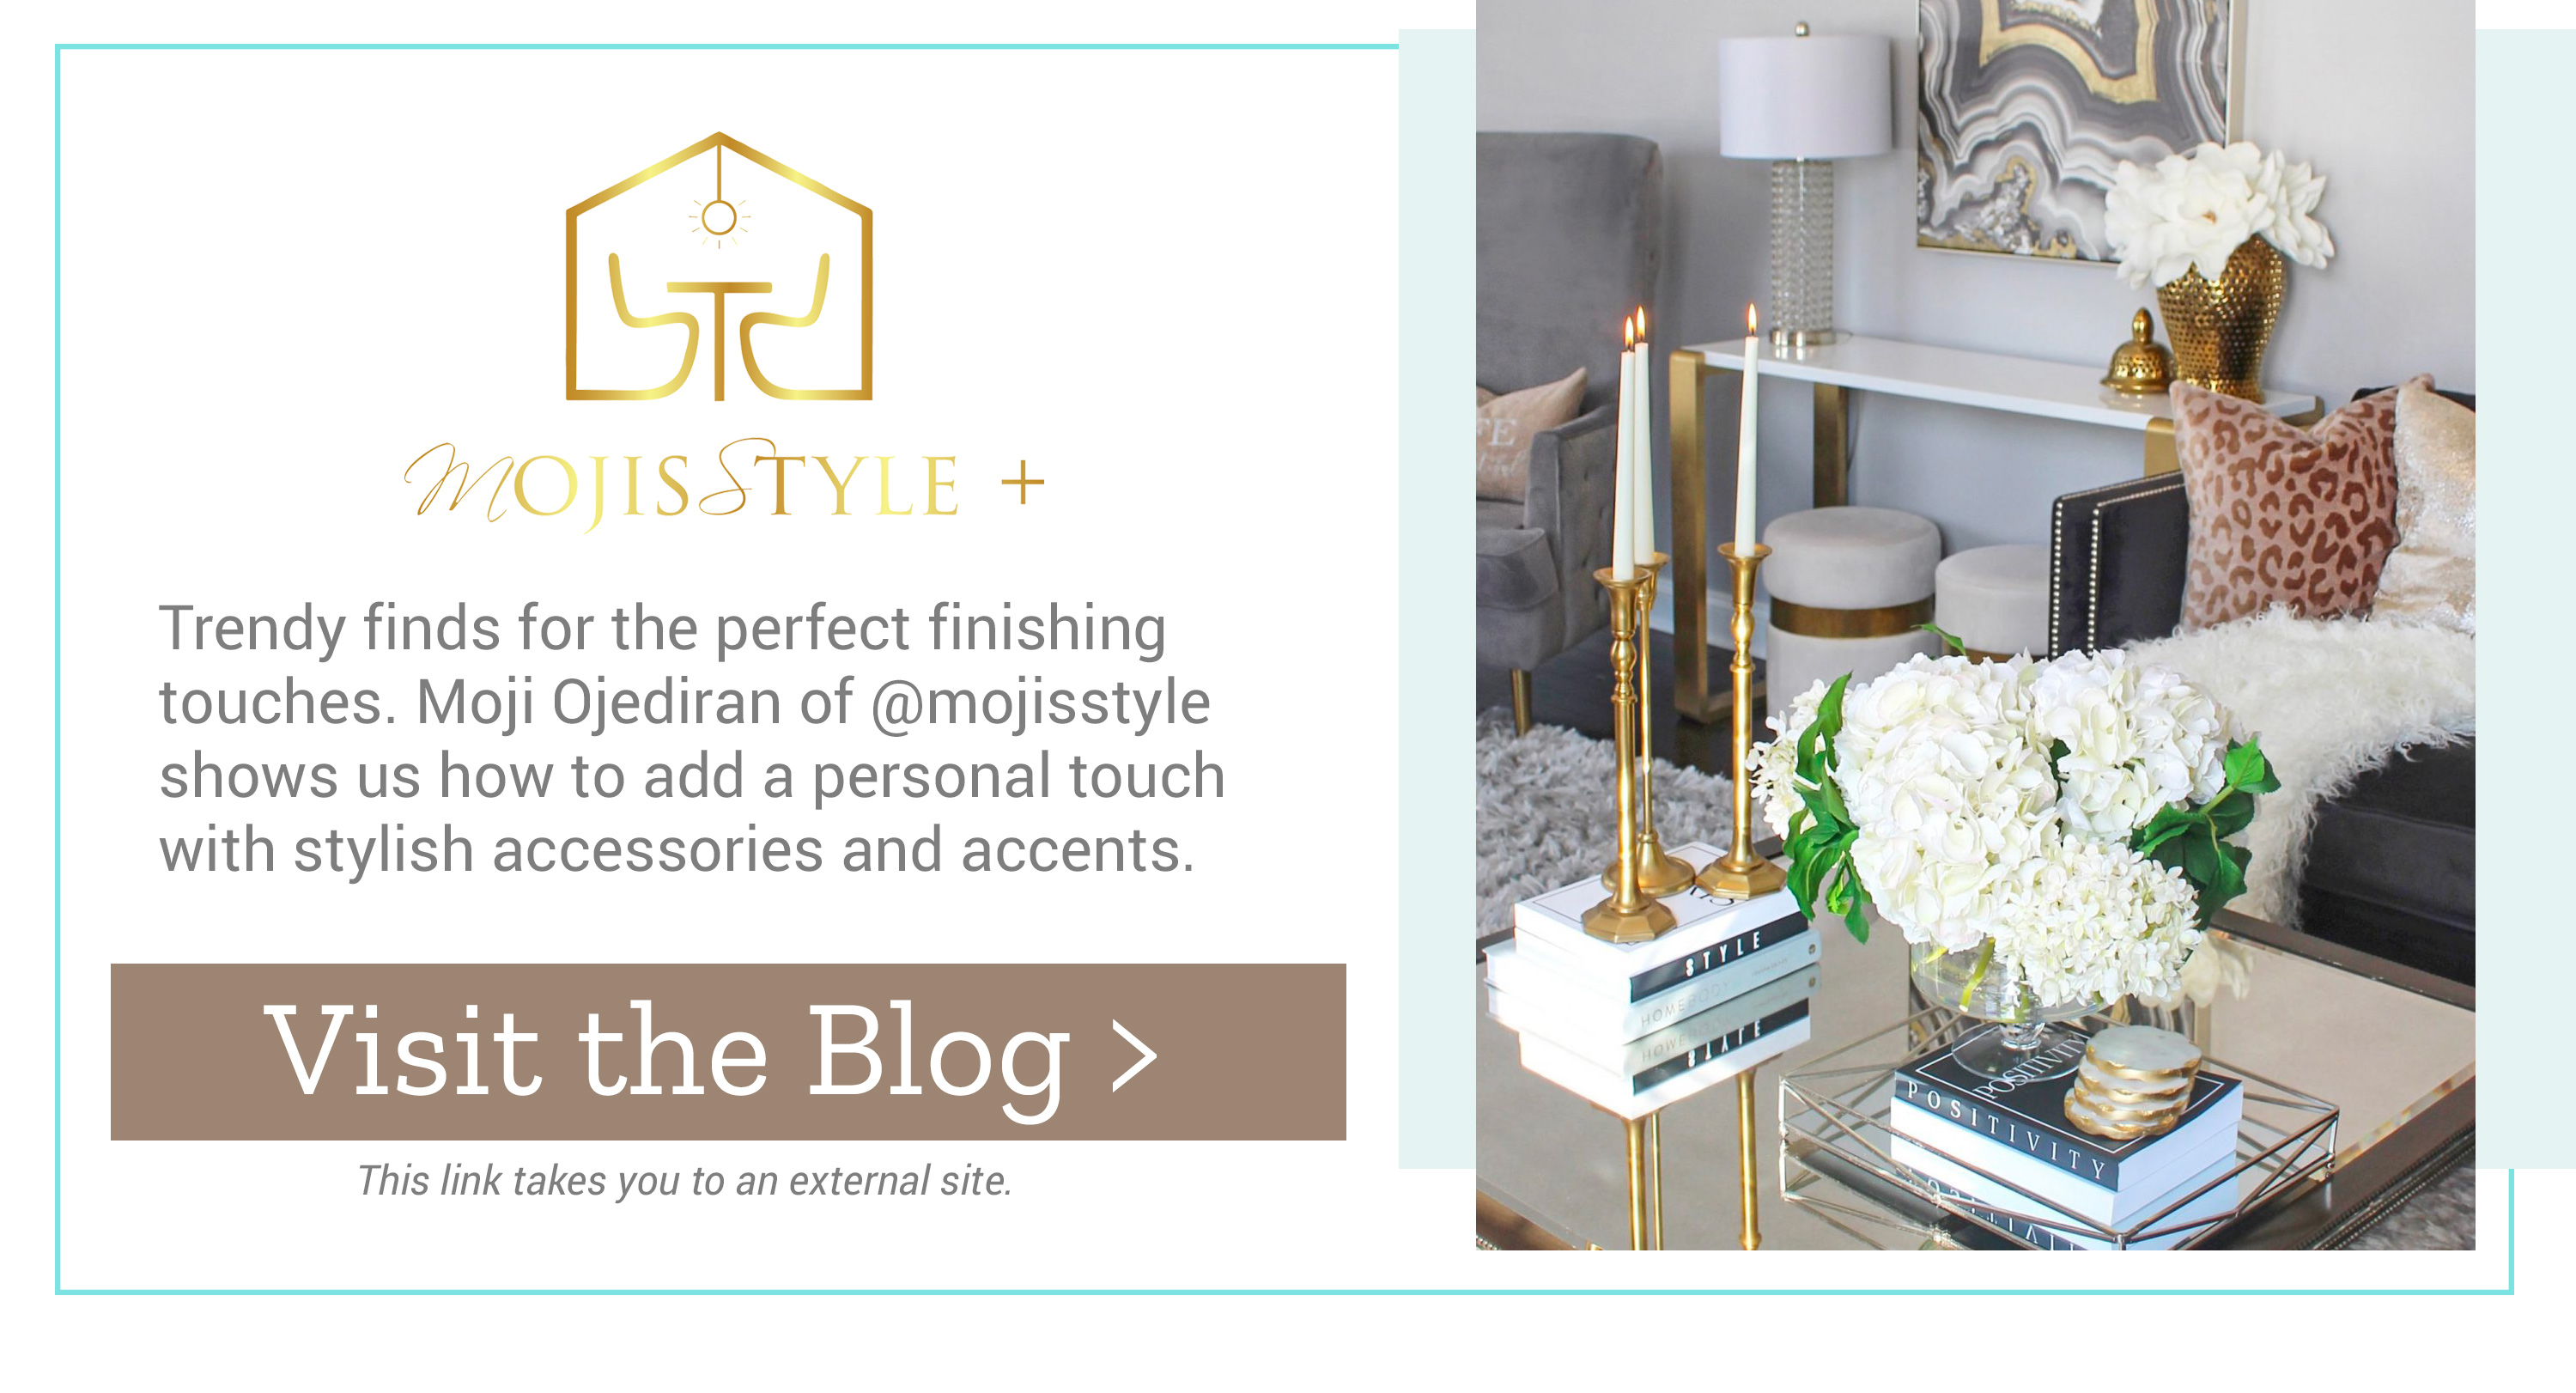 Mojisstyle - Trendy finds for the perfect finishing touches. Visit the Blog >